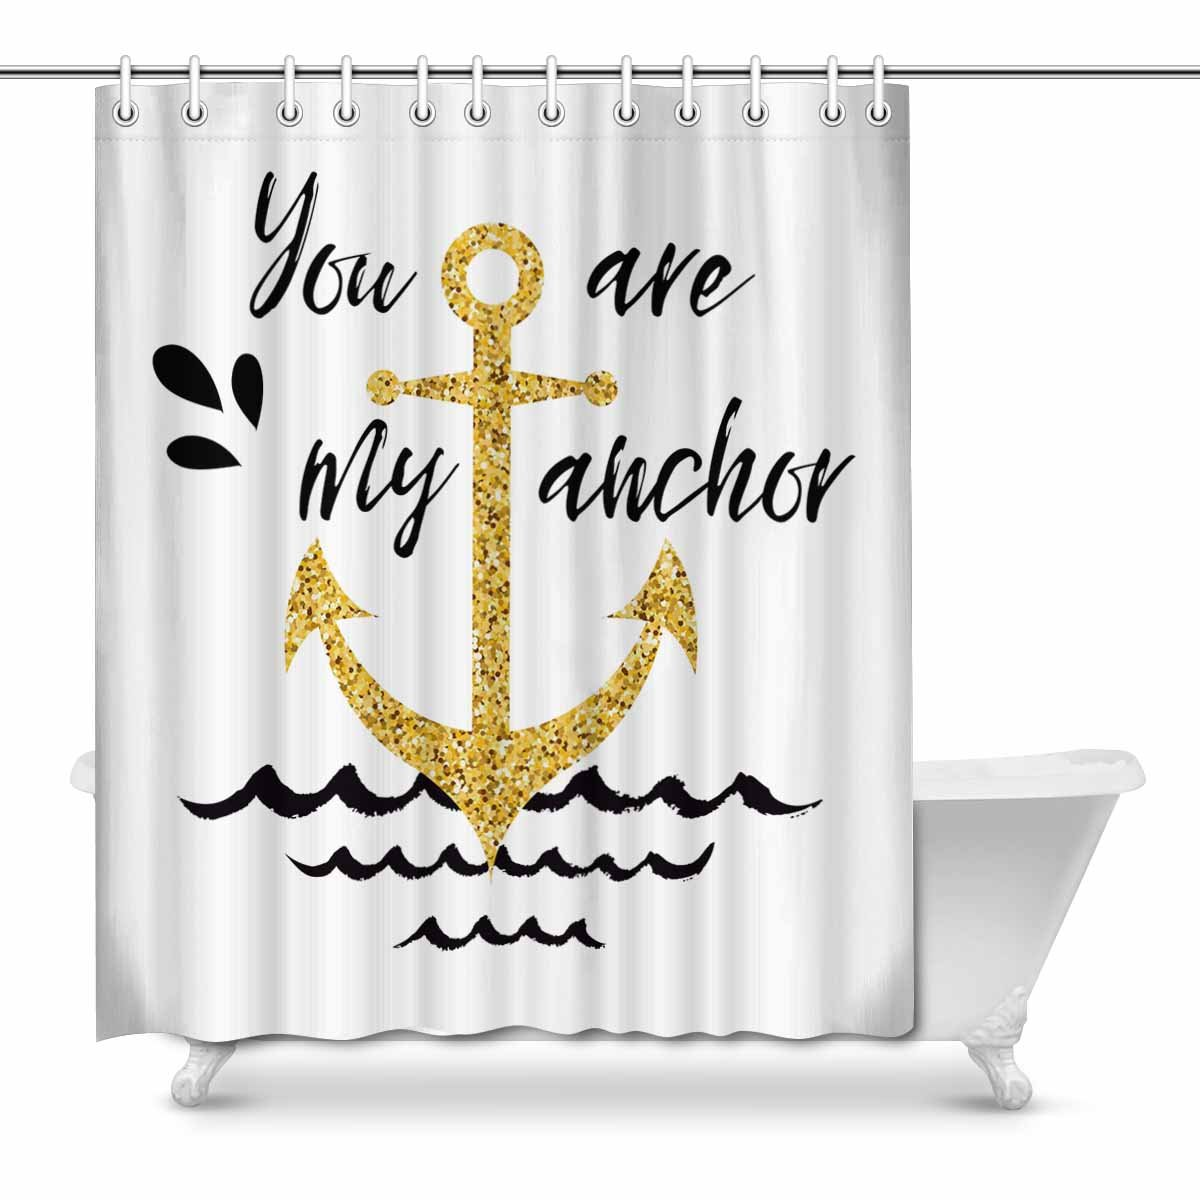 MKHERT Golden Nautical Anchor with Love Quotes You are My Anchor House  Decor Shower Curtain for Bathroom Decorative Bathroom Shower Curtain Set  66x72 ...